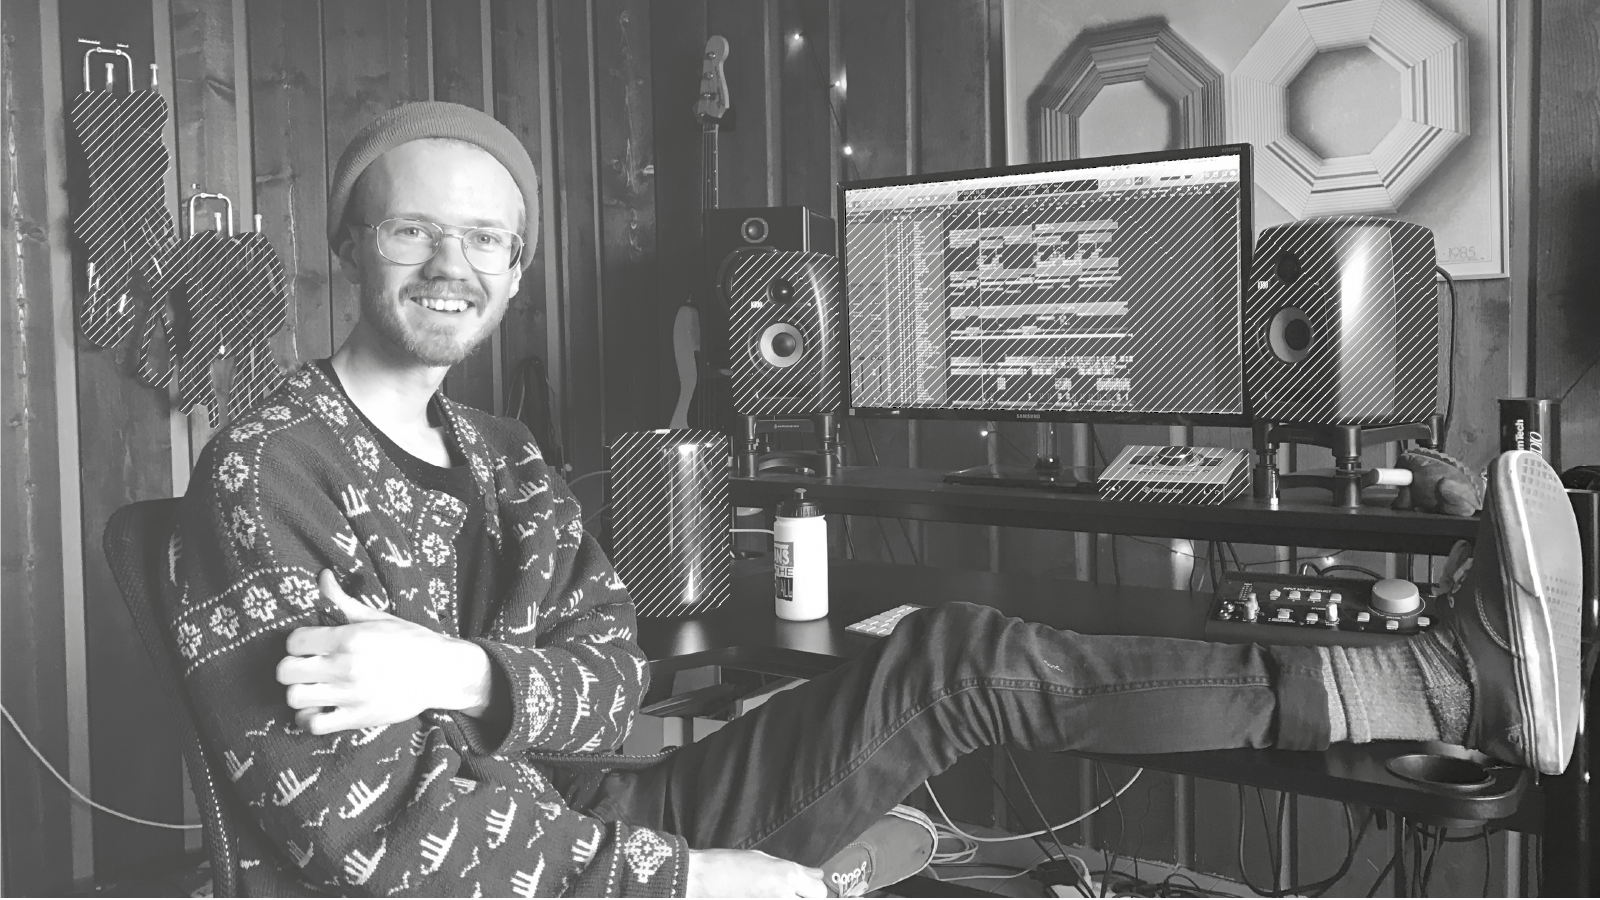 Alexander in his studio (songwriter and producer)